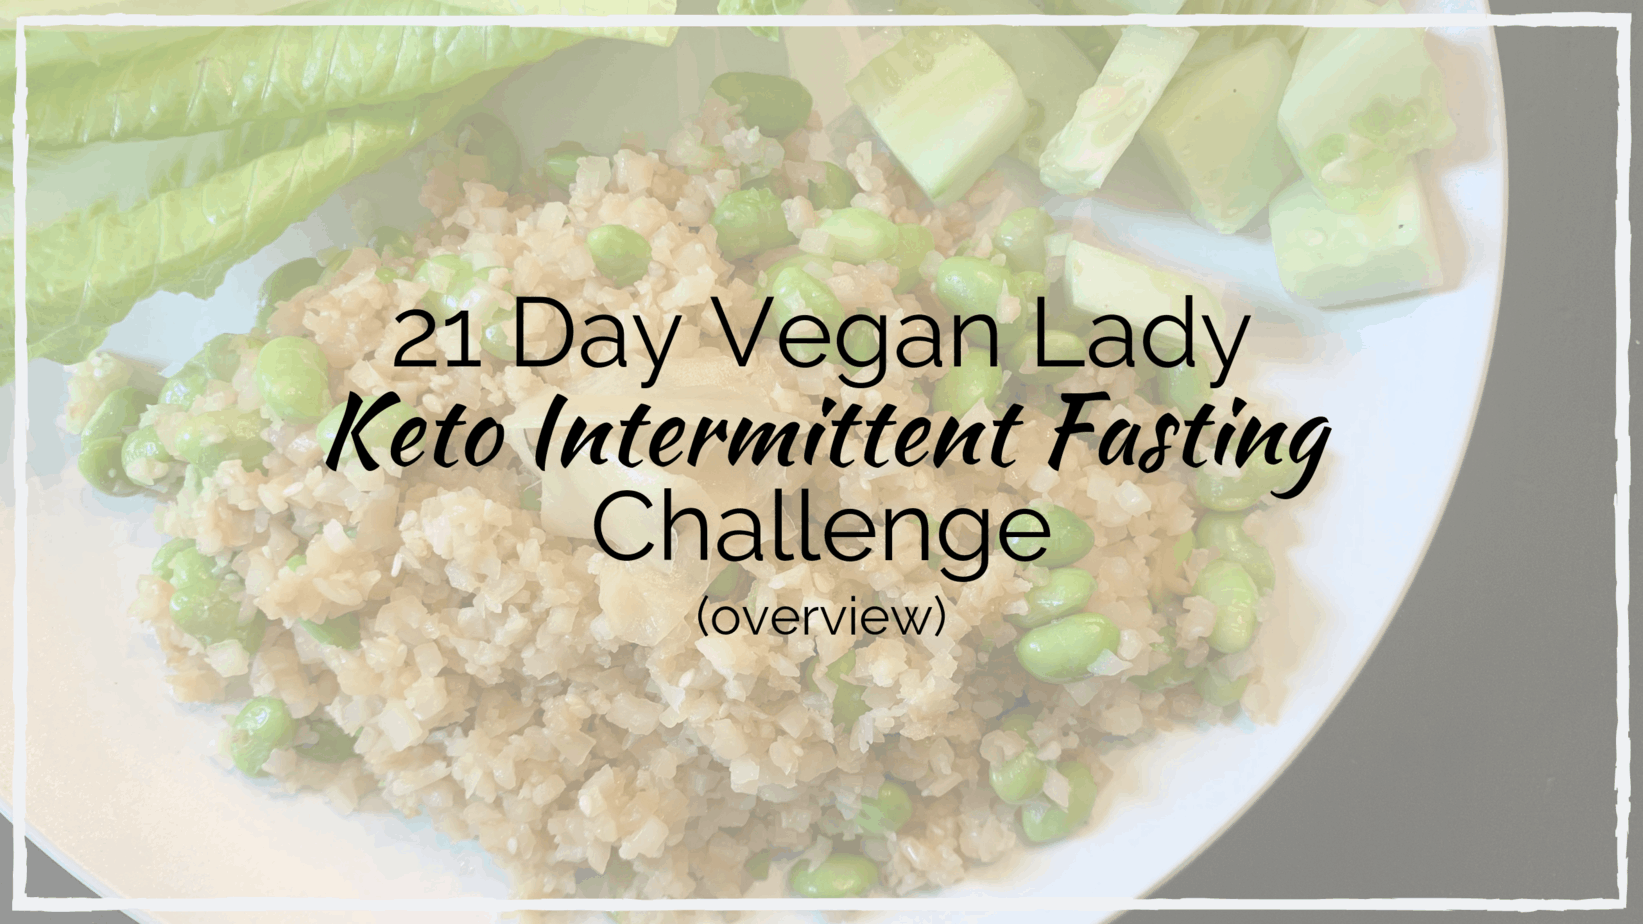 21 Day Vegan Keto Intermittent Fasting Challenge Overview